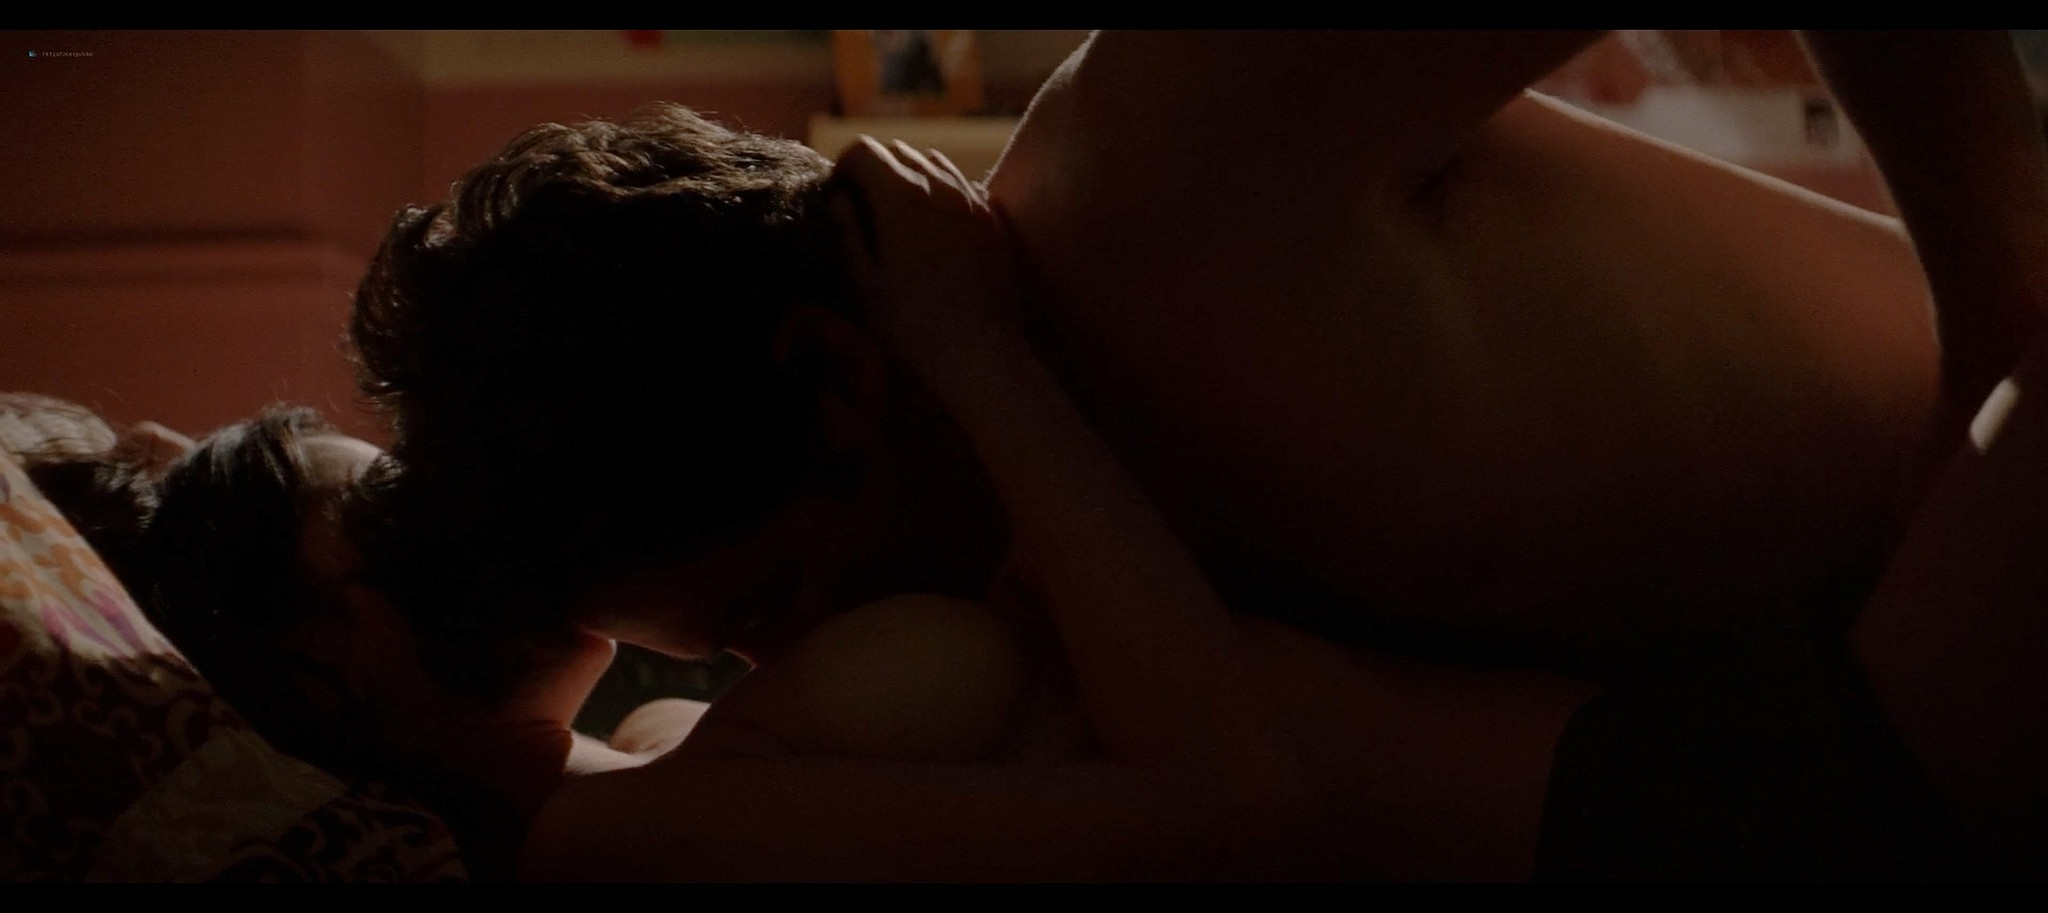 Rachel Bilson nude and sex Cindy Sampson and Patricia Stasiak naked sex too The Last Kiss 2006 HD 1080p BluRay 16